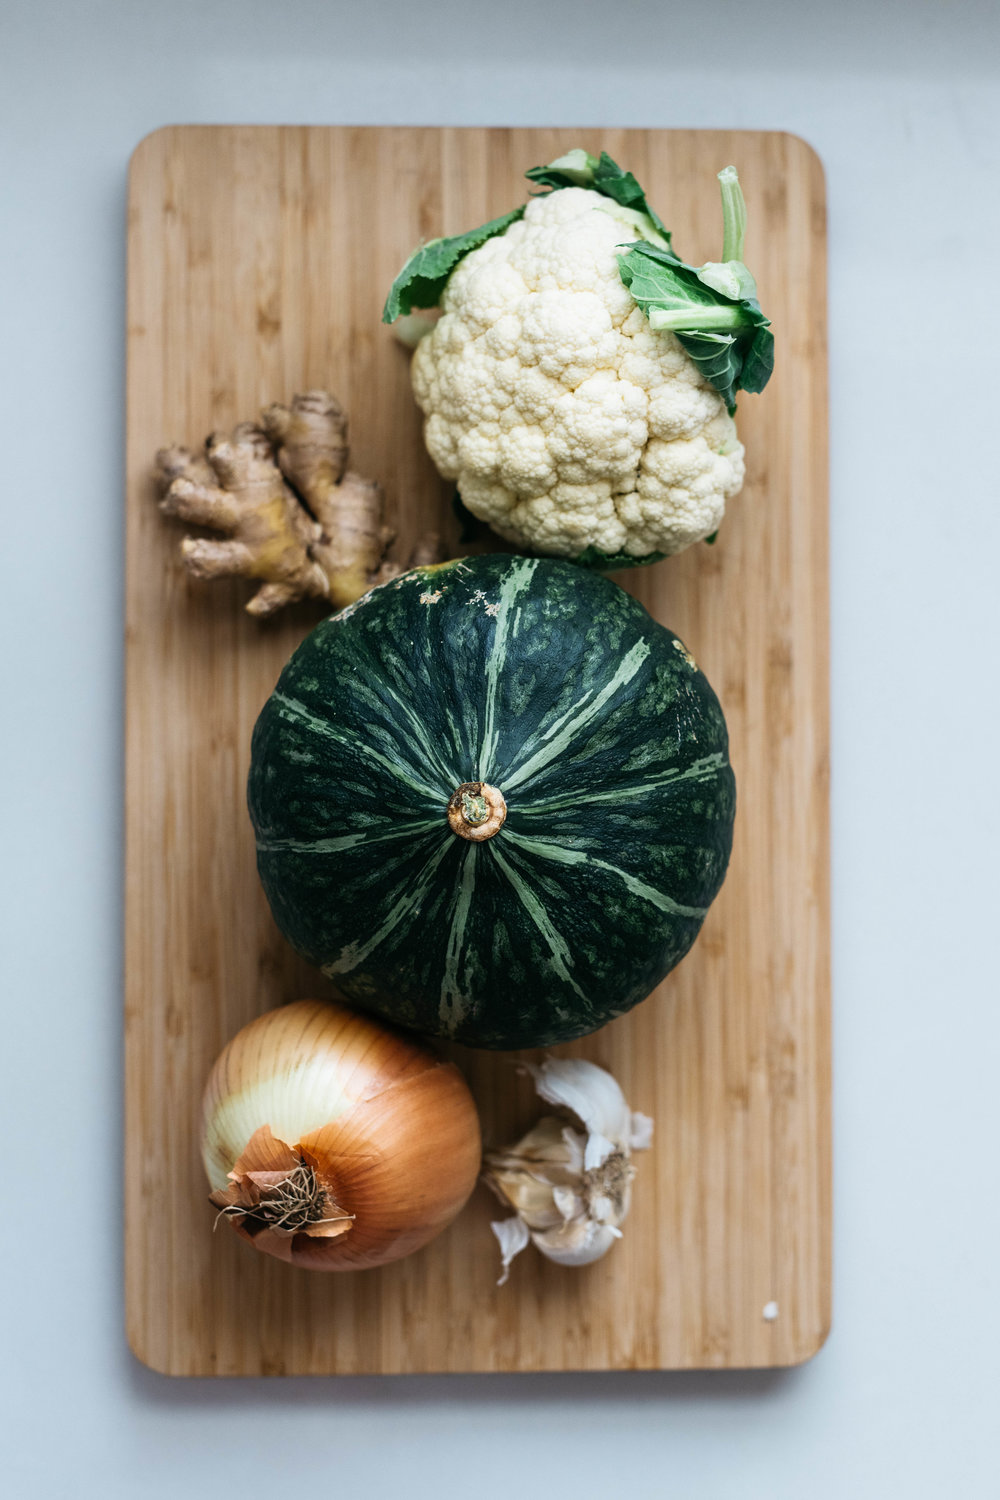 GOLDEN CAULIFLOWER KABOCHA SOUP | dolly and oatmeal